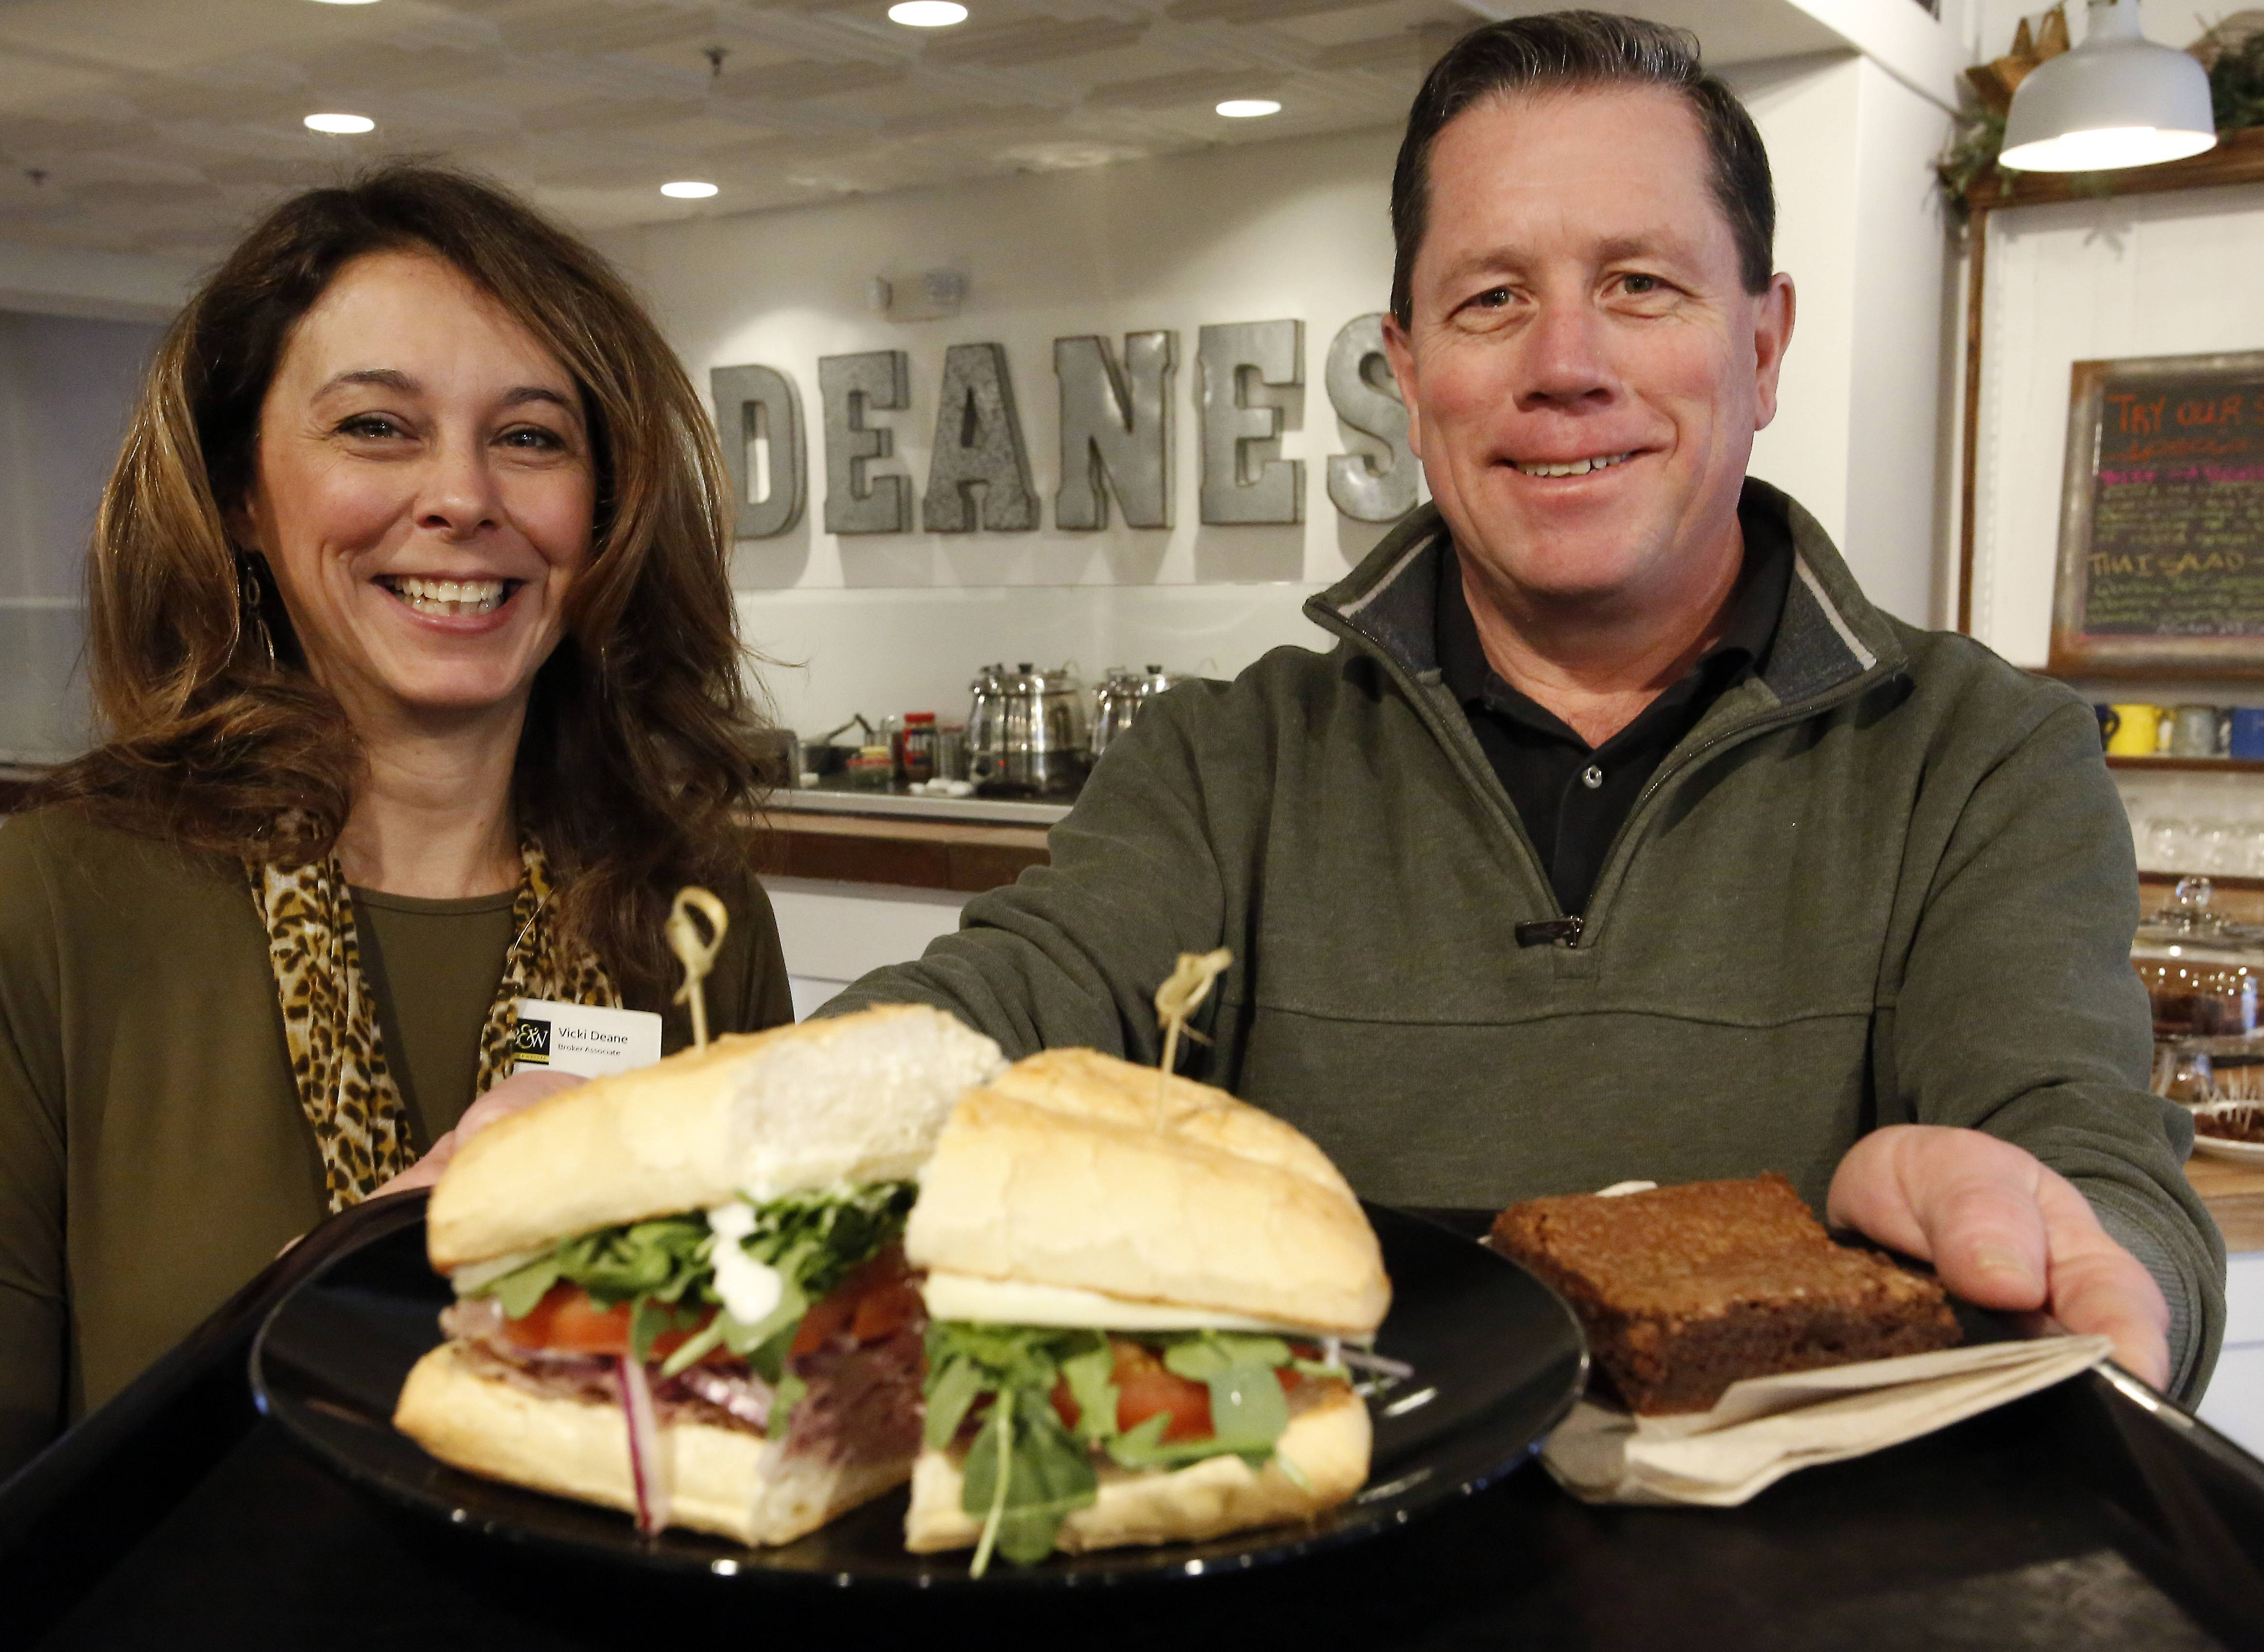 Vicki, left, and Chris Deane of Deane's Market and Deli in Geneva offer a roast beef sandwich that is one of columnist Dave Heun's favorites.